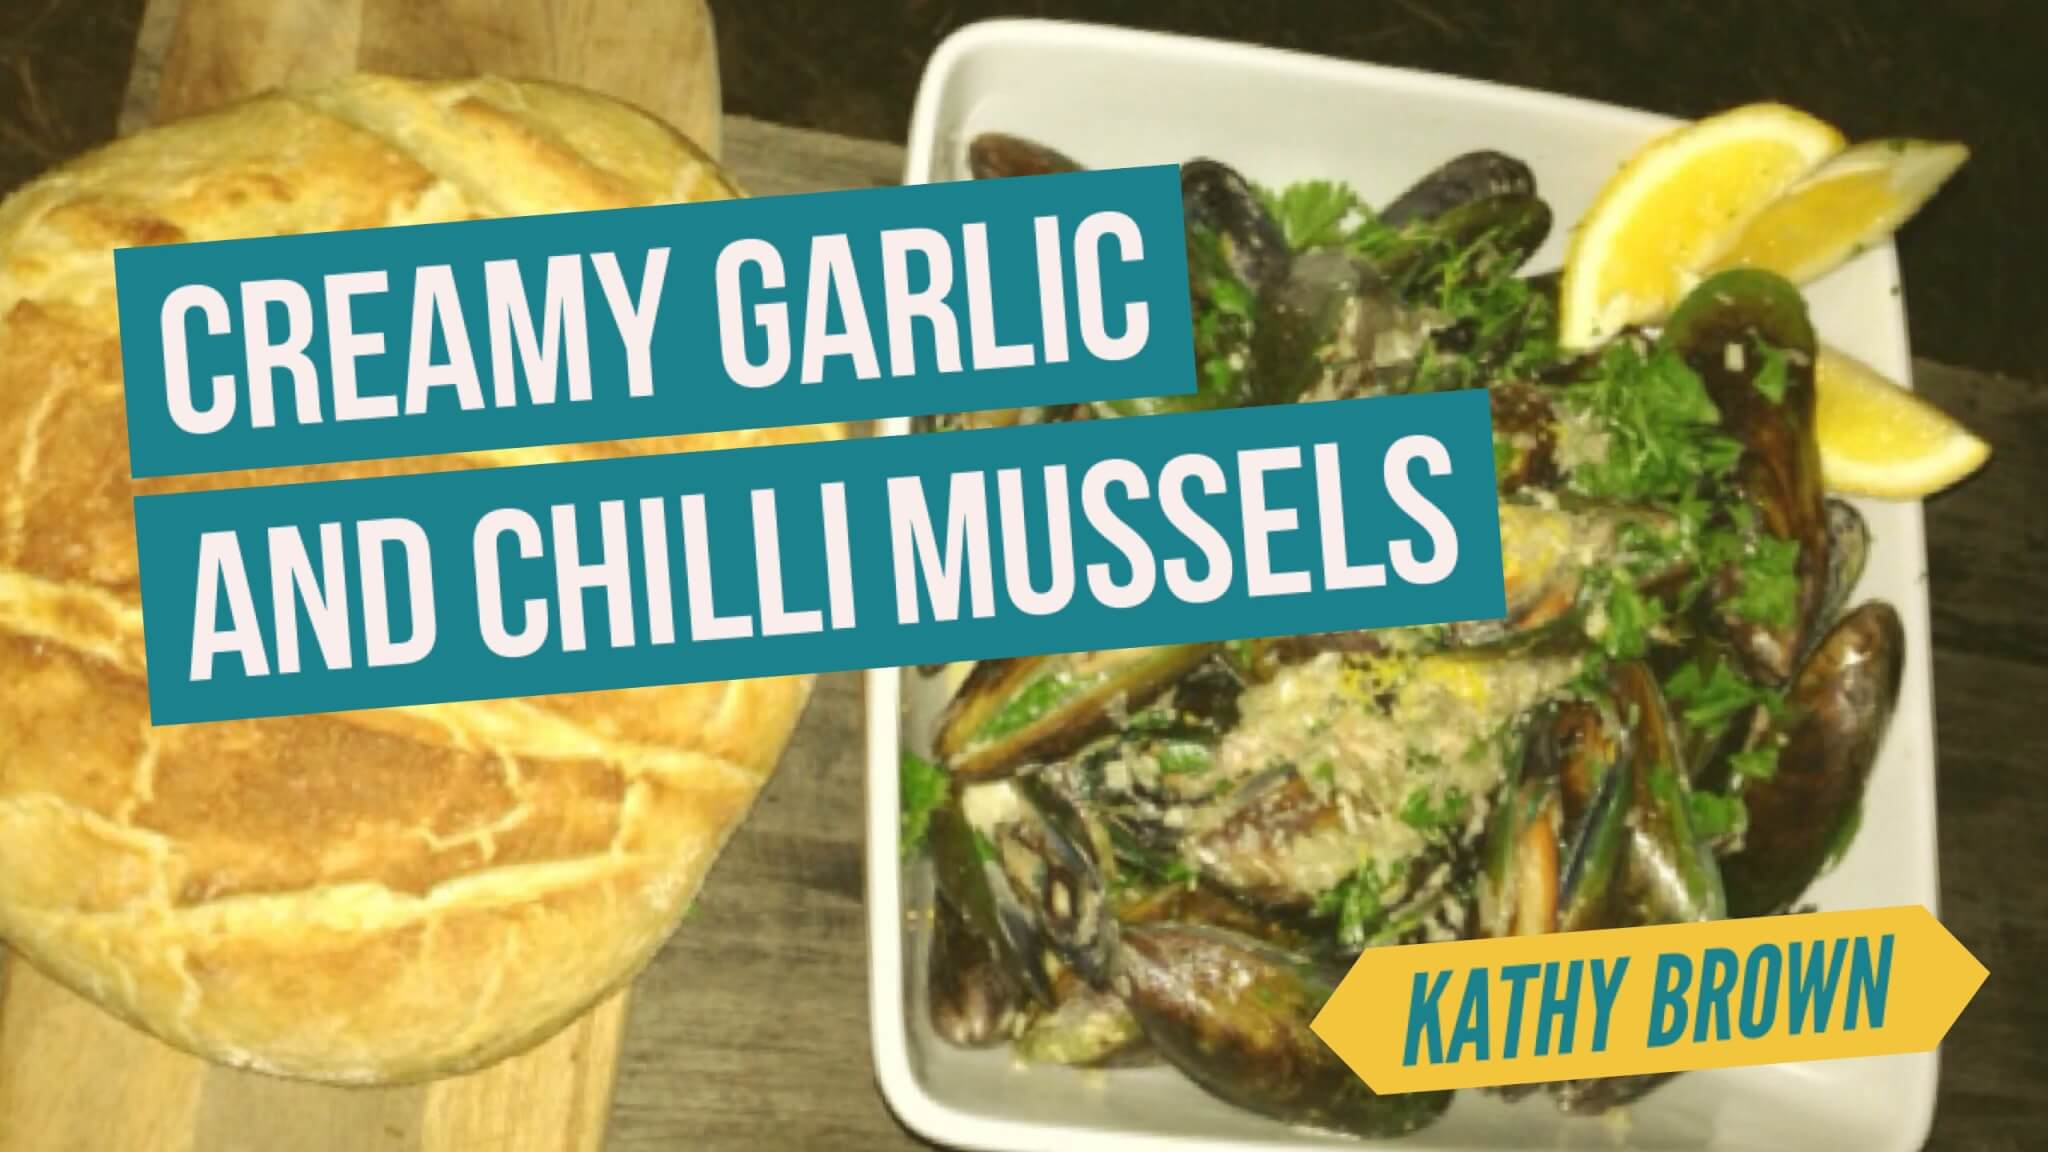 Creamy Garlic and Chilli Mussels | Kathy Brown